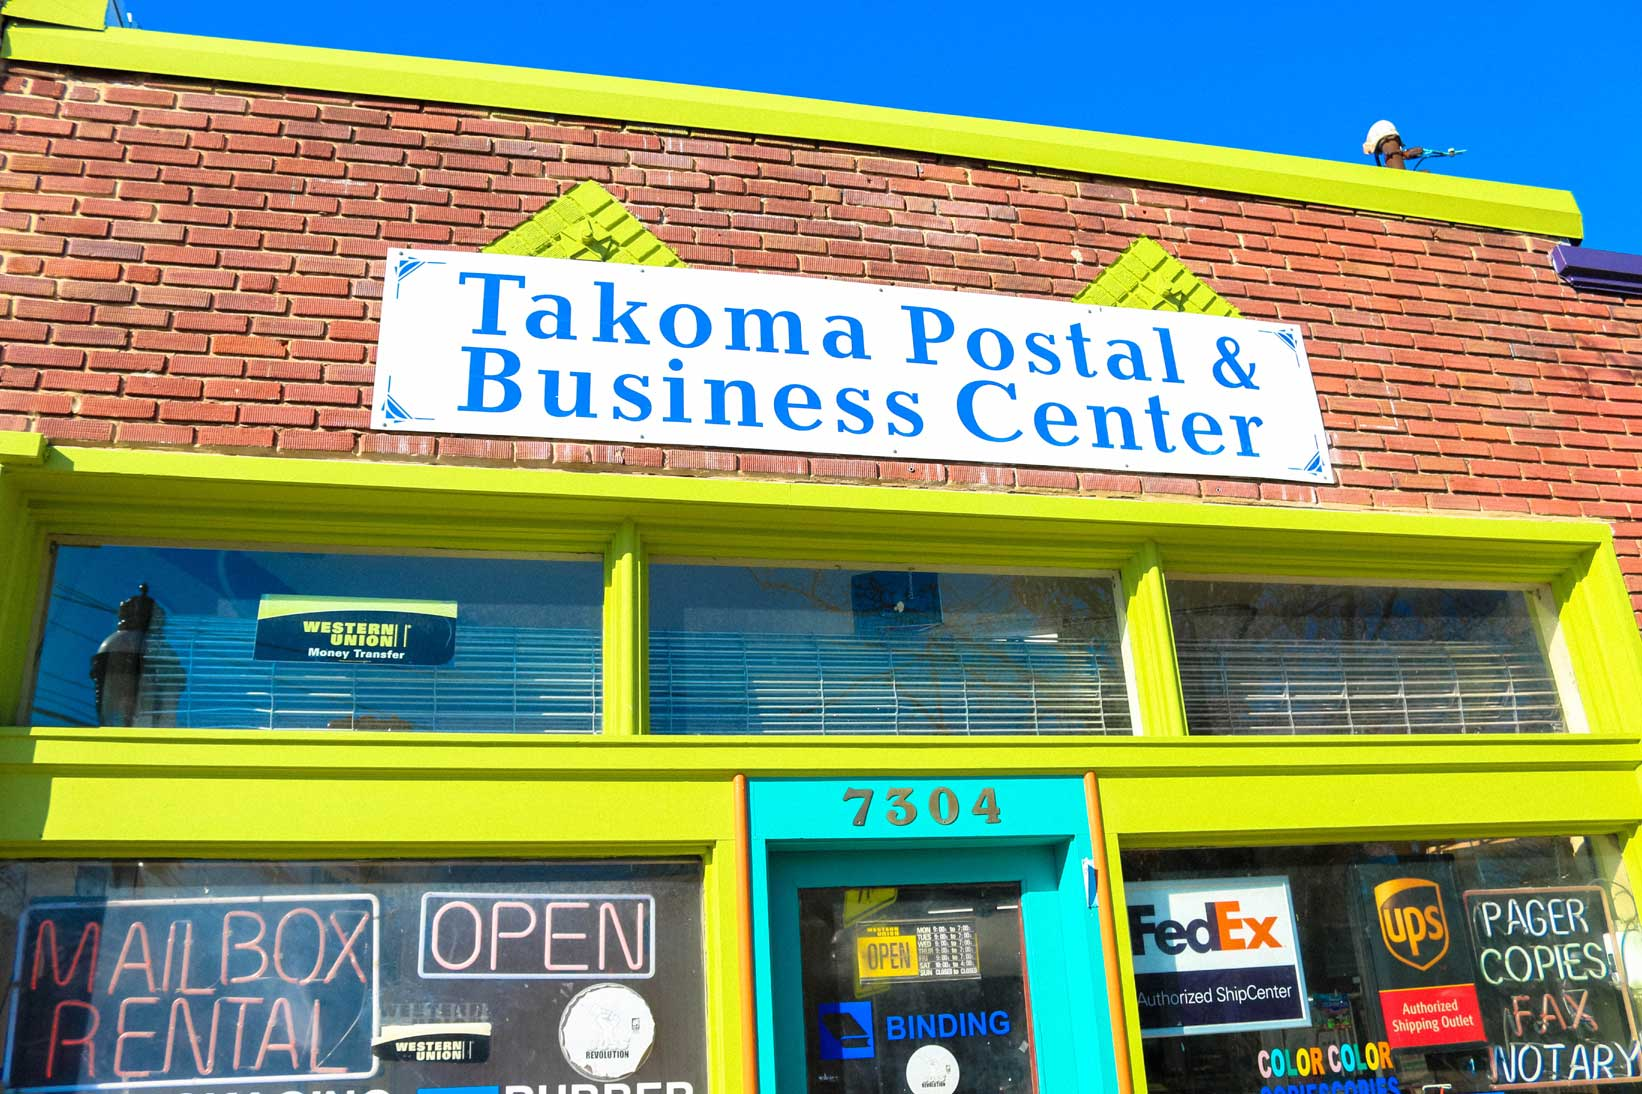 Takoma Postal & Business Center in Takoma Park, MD